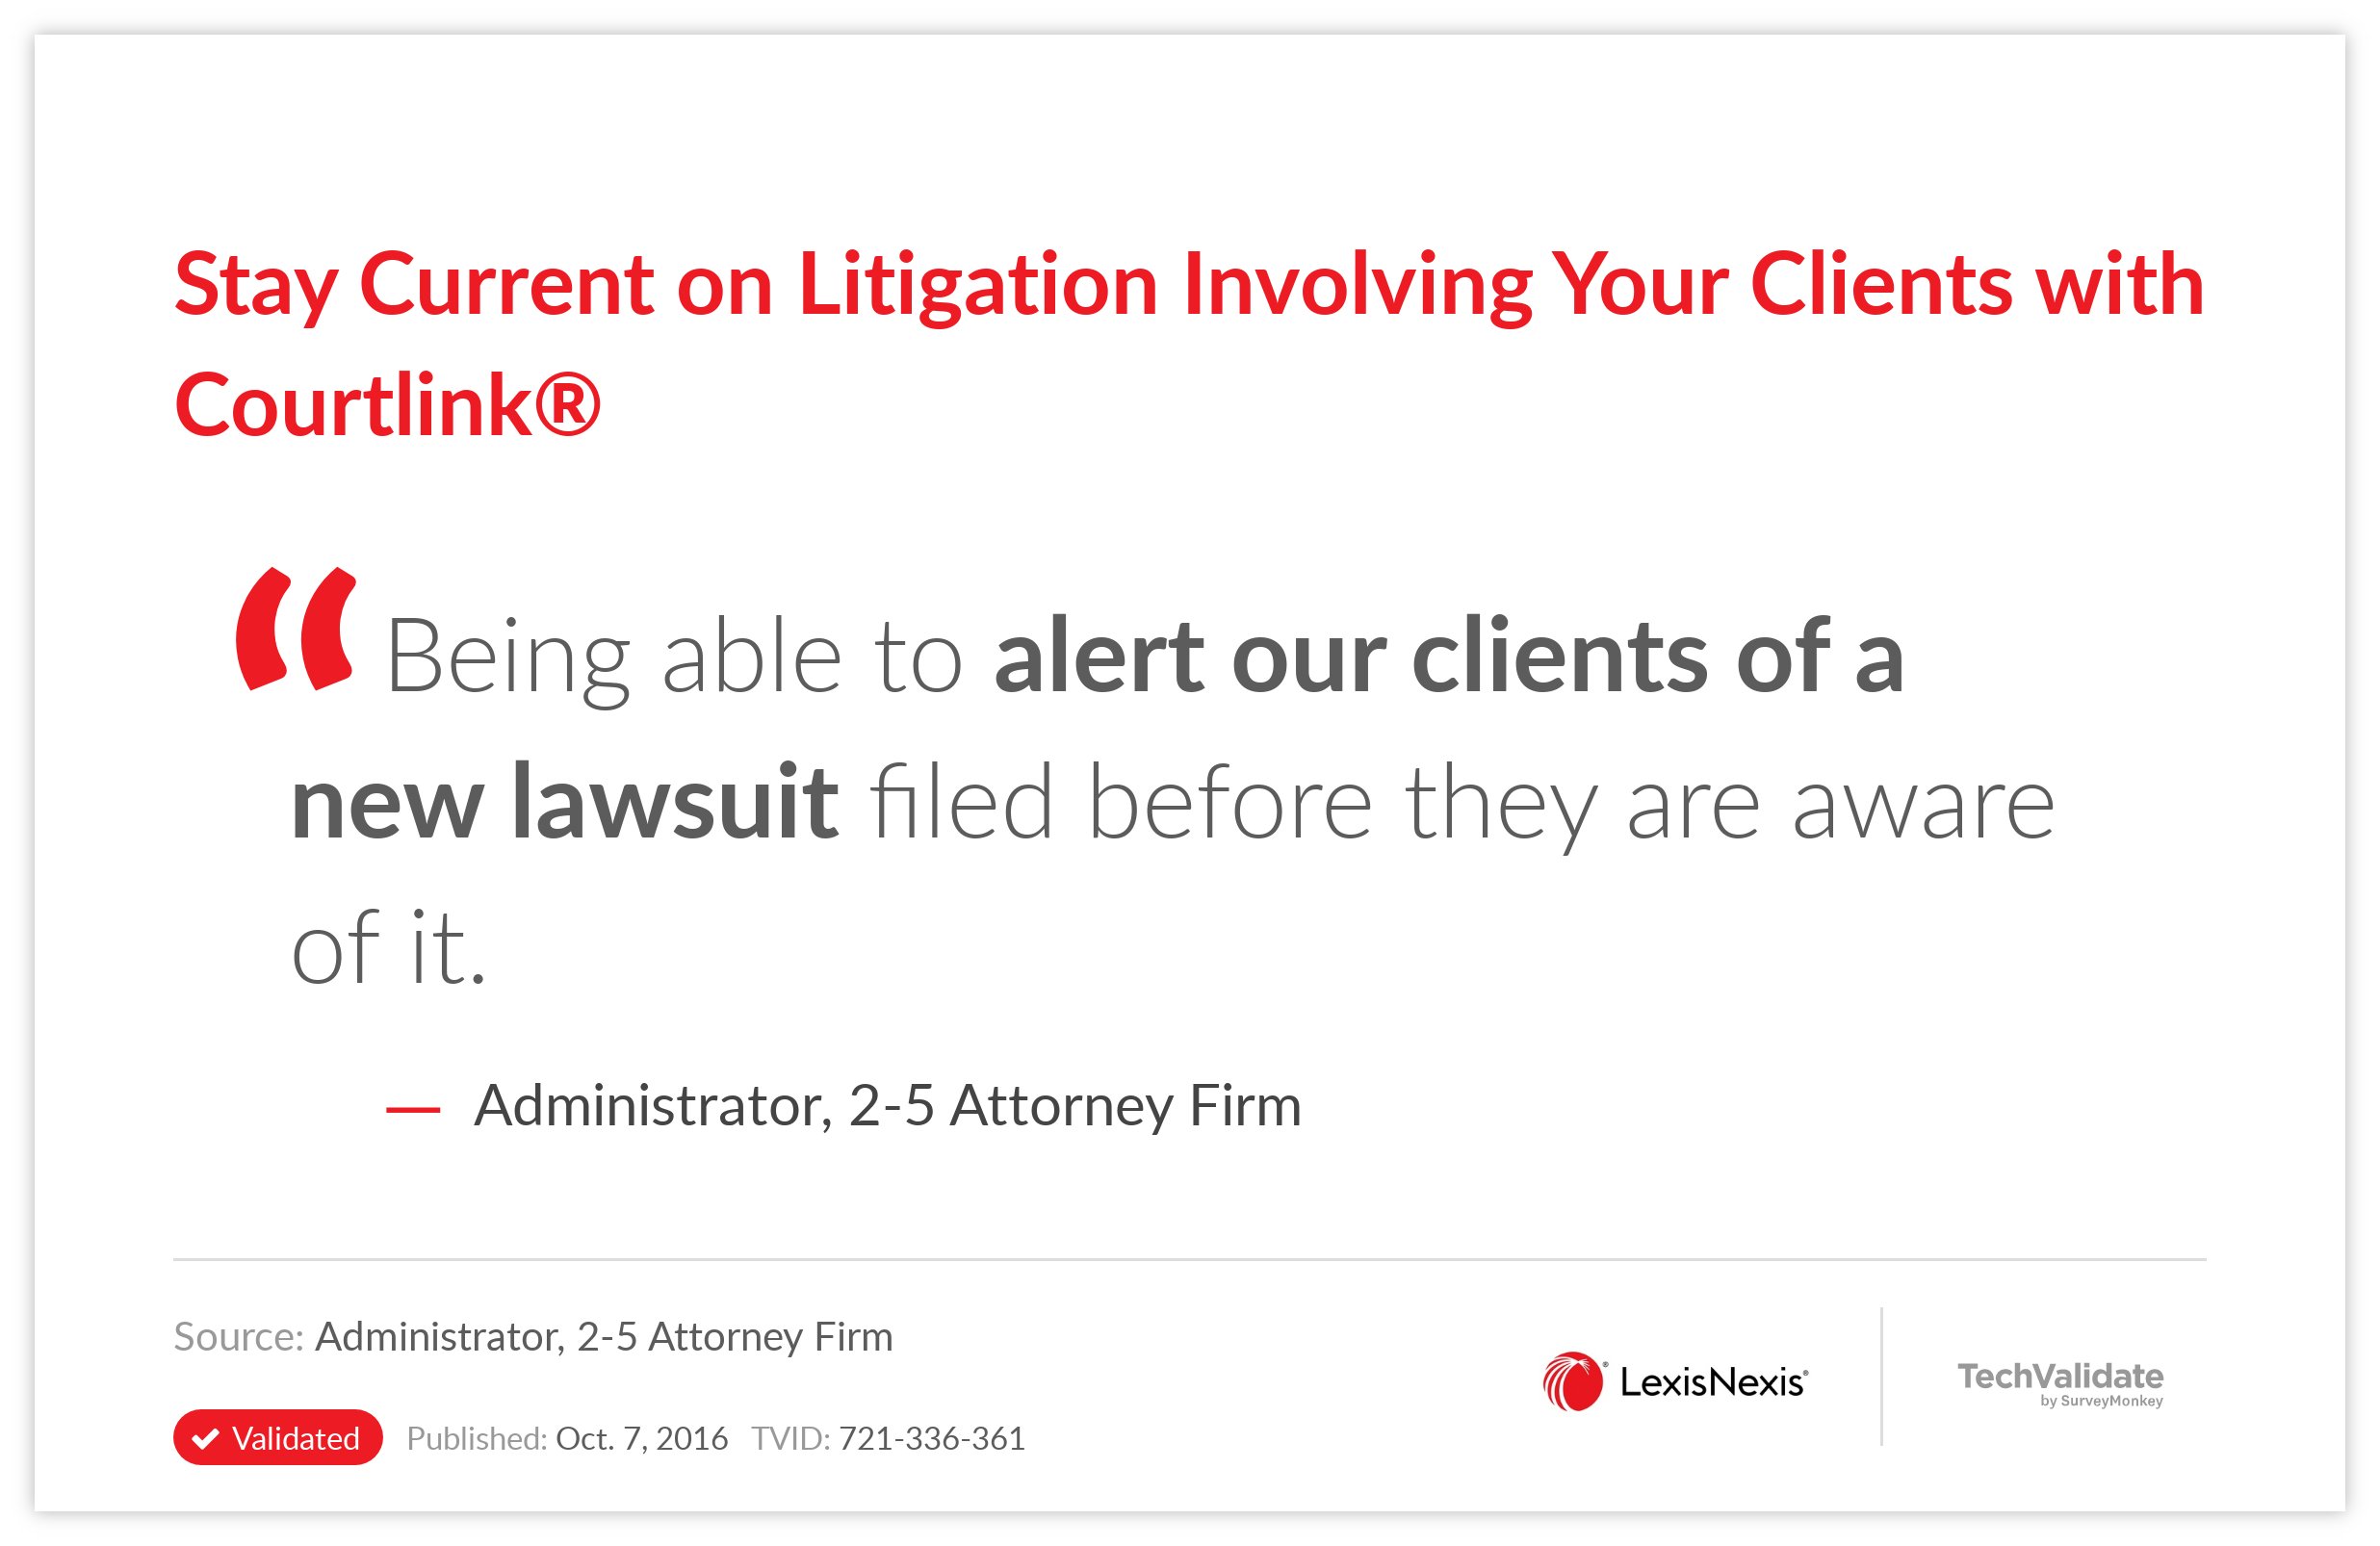 Stay Current on Litigation Involving Your Clients with Courtlink(R)